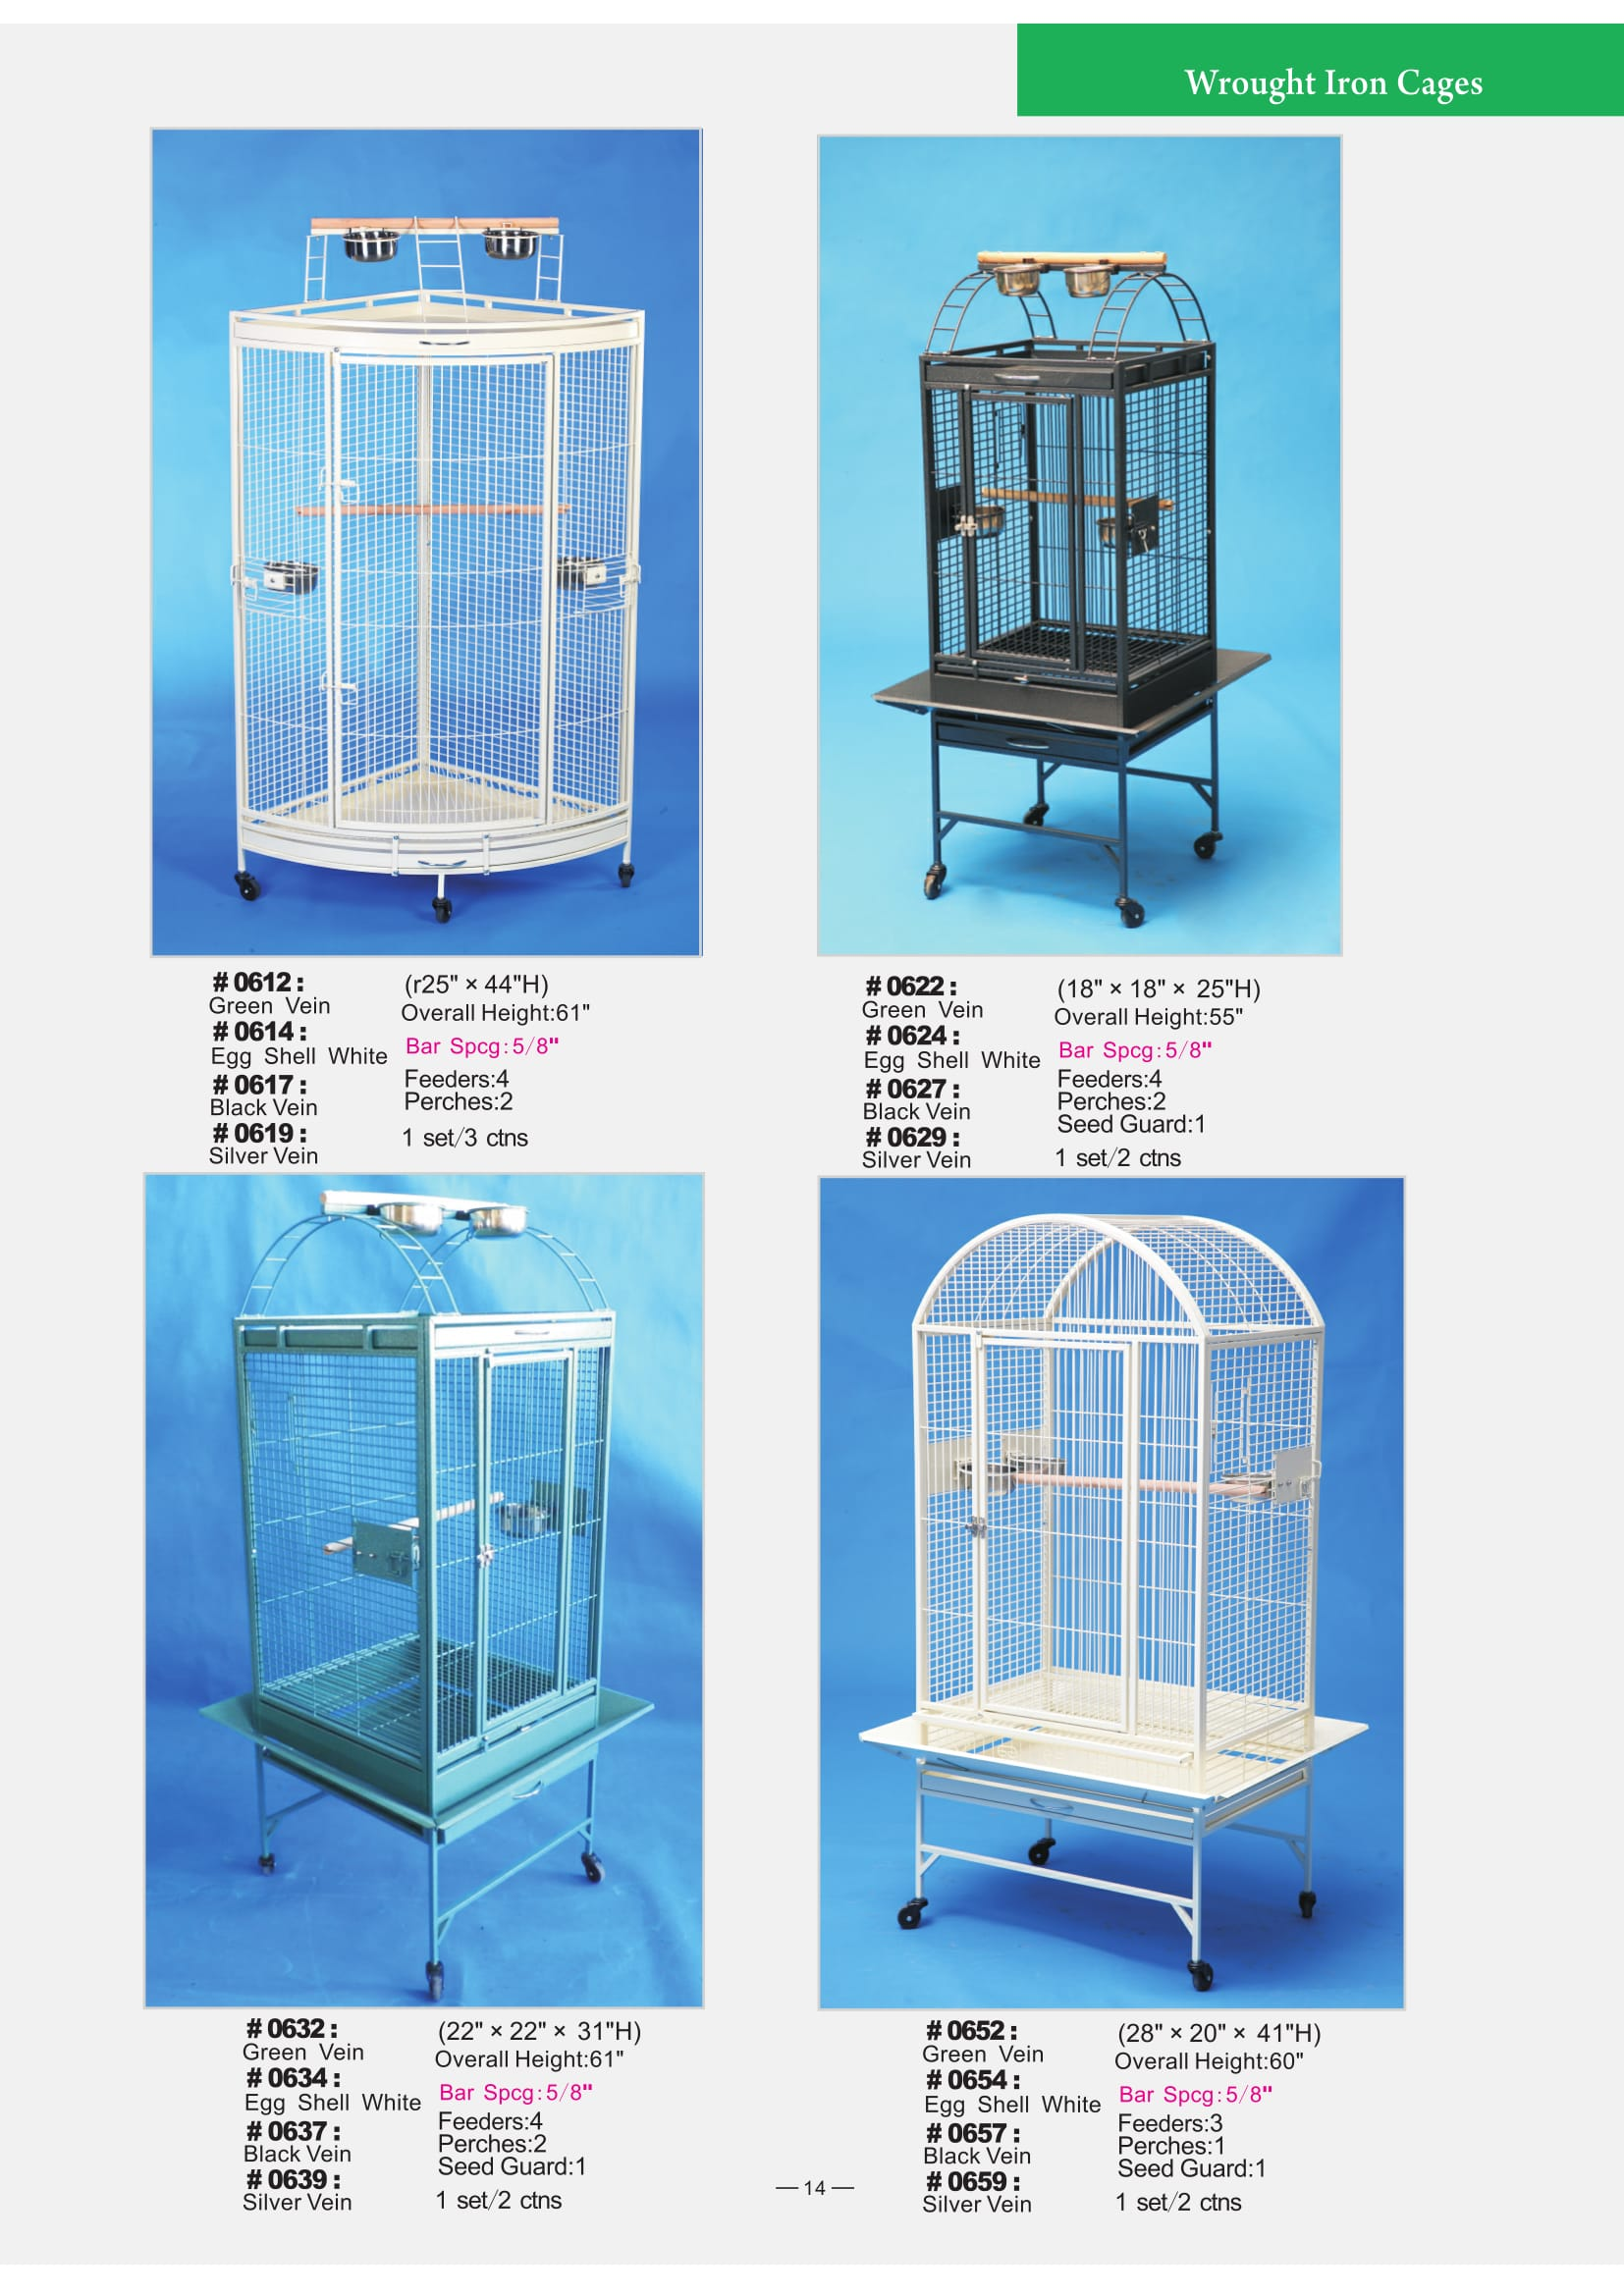 6. Wrought Iron Cages-4